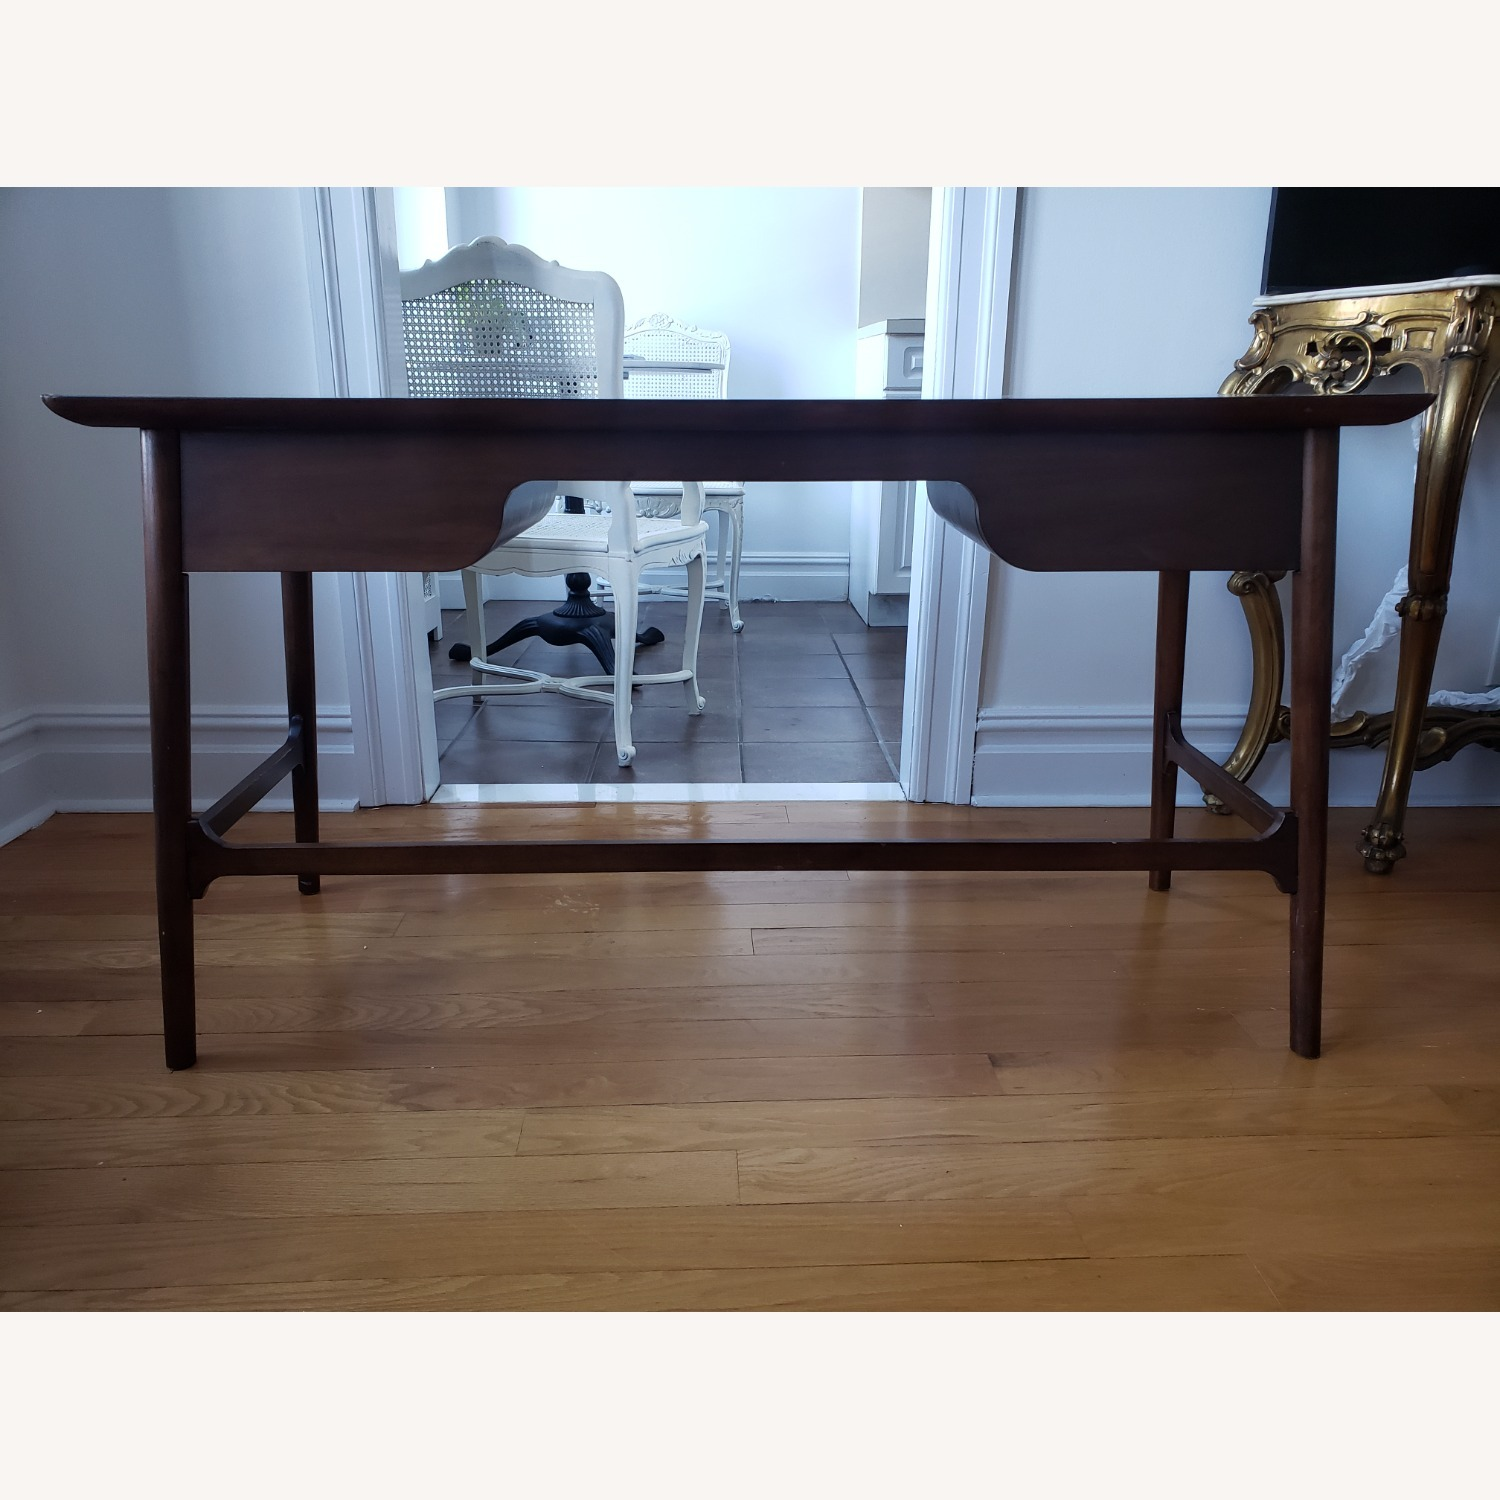 Desk from France&Son for Office, Home office - image-11